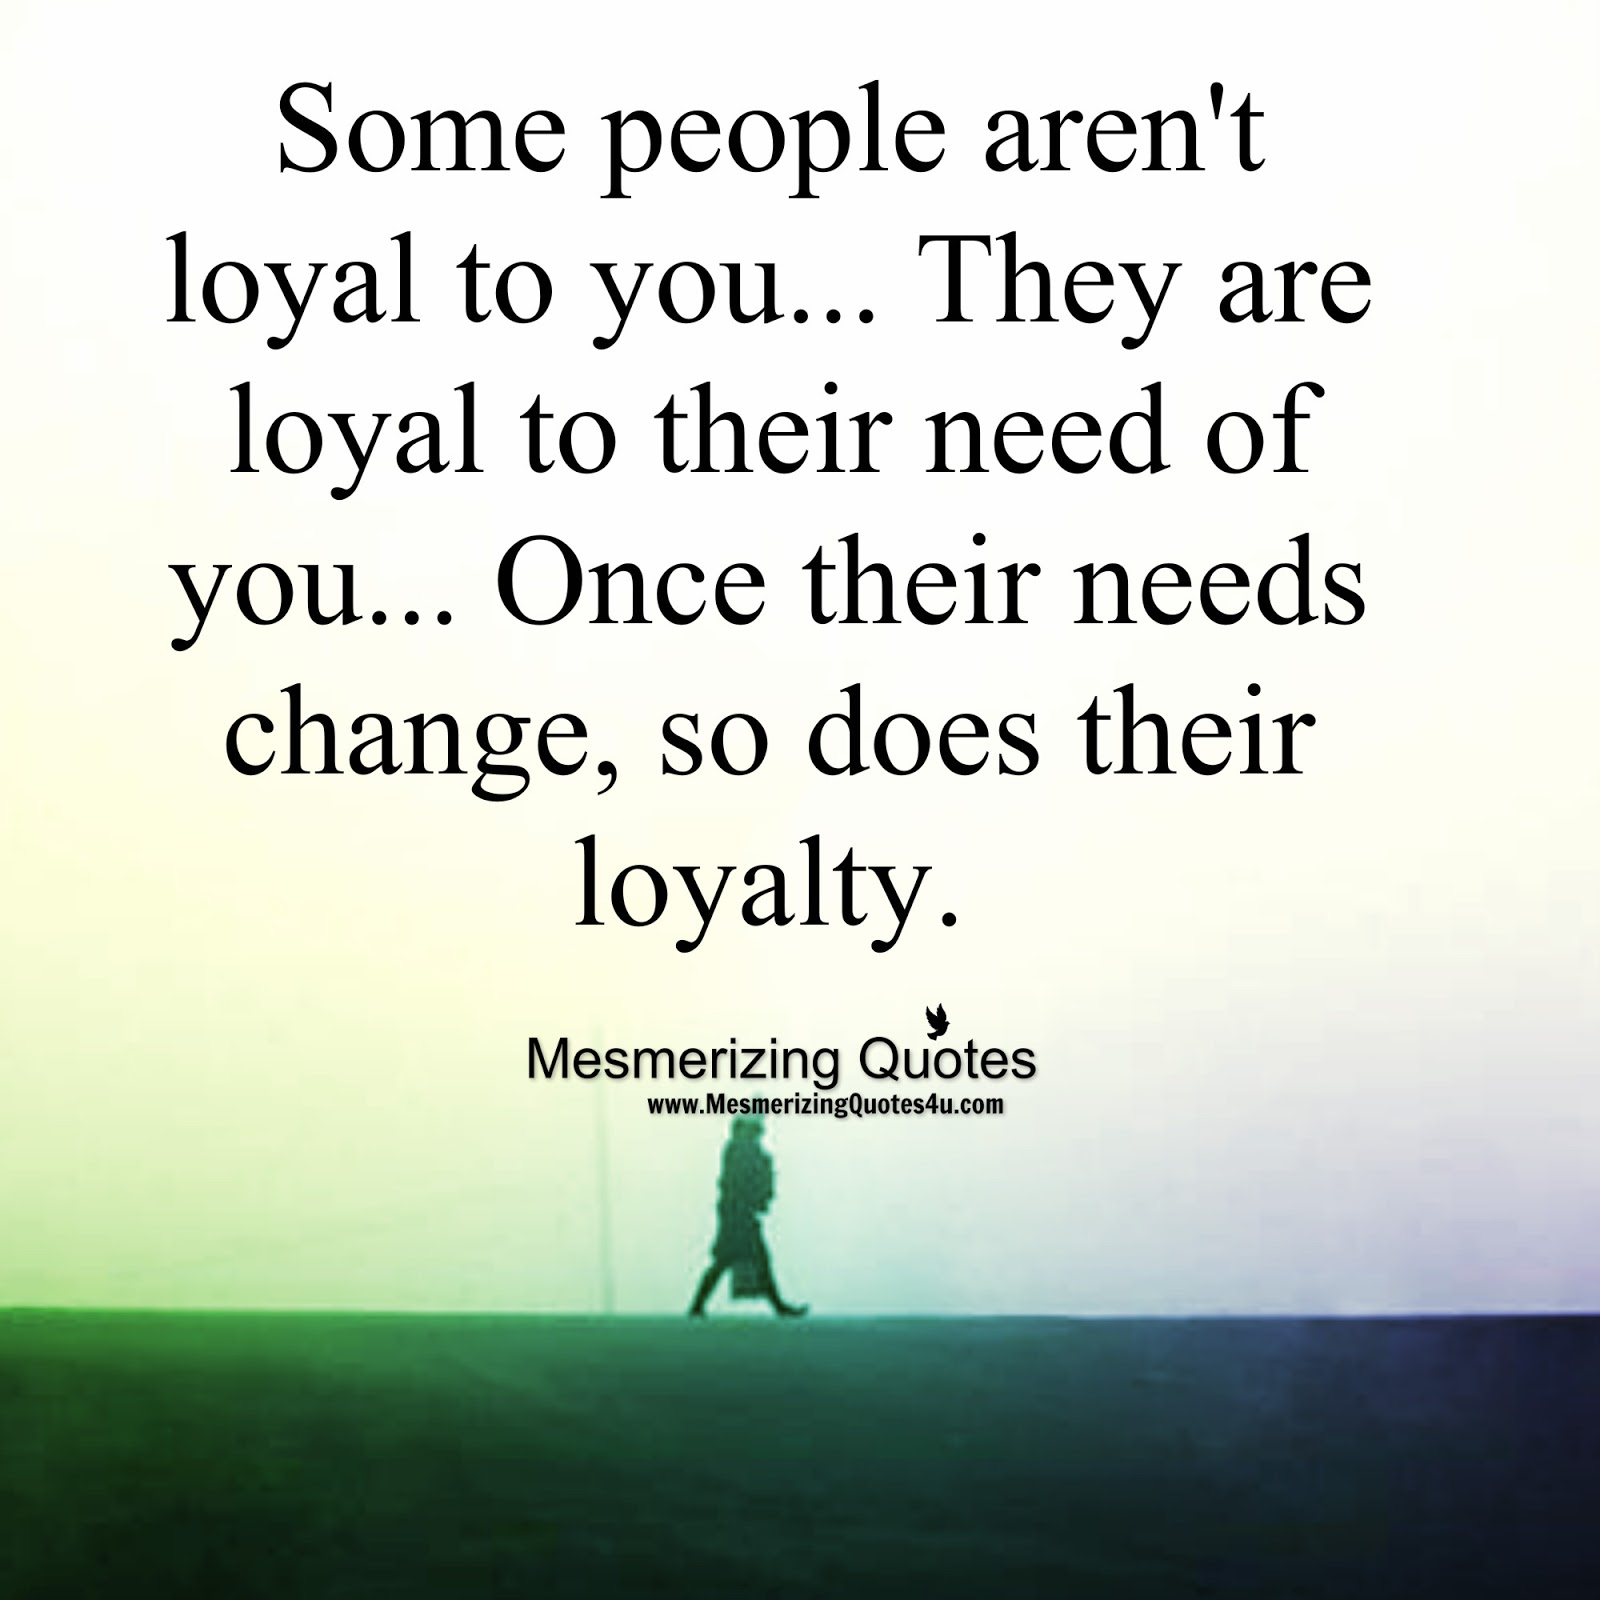 Quotes About Loyalty And Friendship Mesmerizing Quotes Some People Aren't Loyal To You.